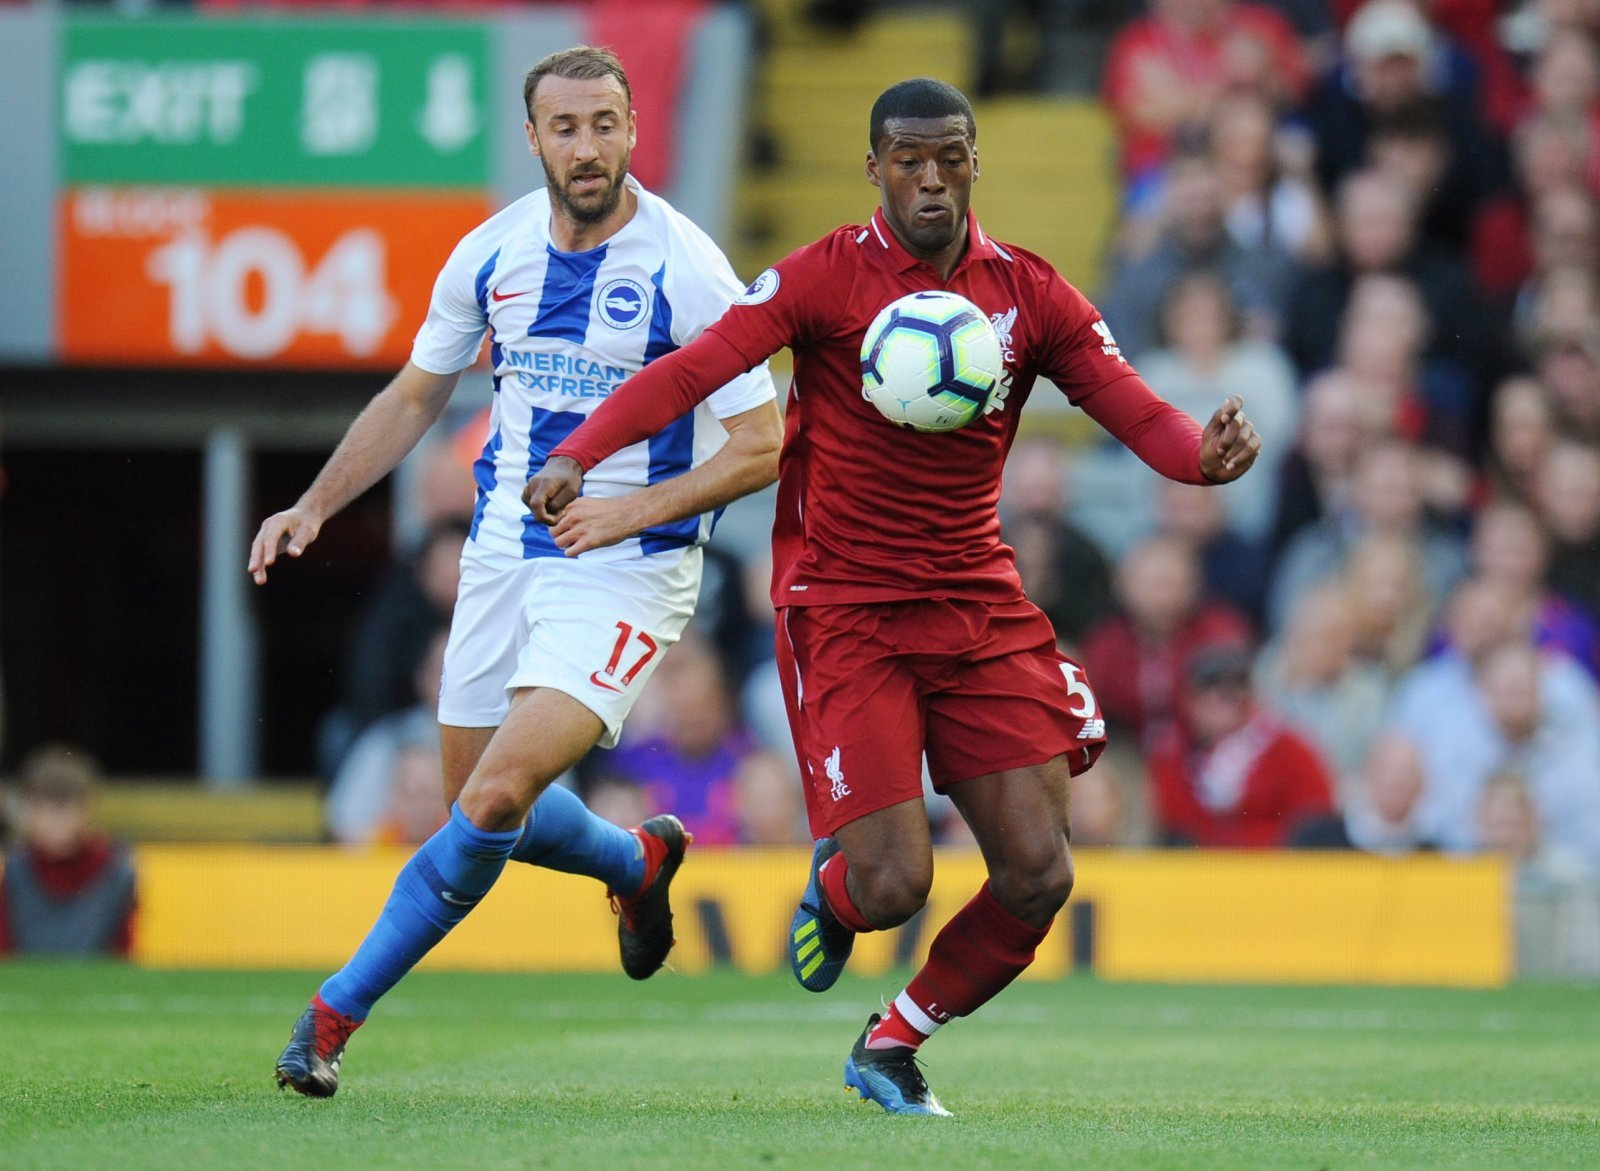 Salah may have scored for Liverpool, but Wijnaldum was their unsung hero in Brighton win